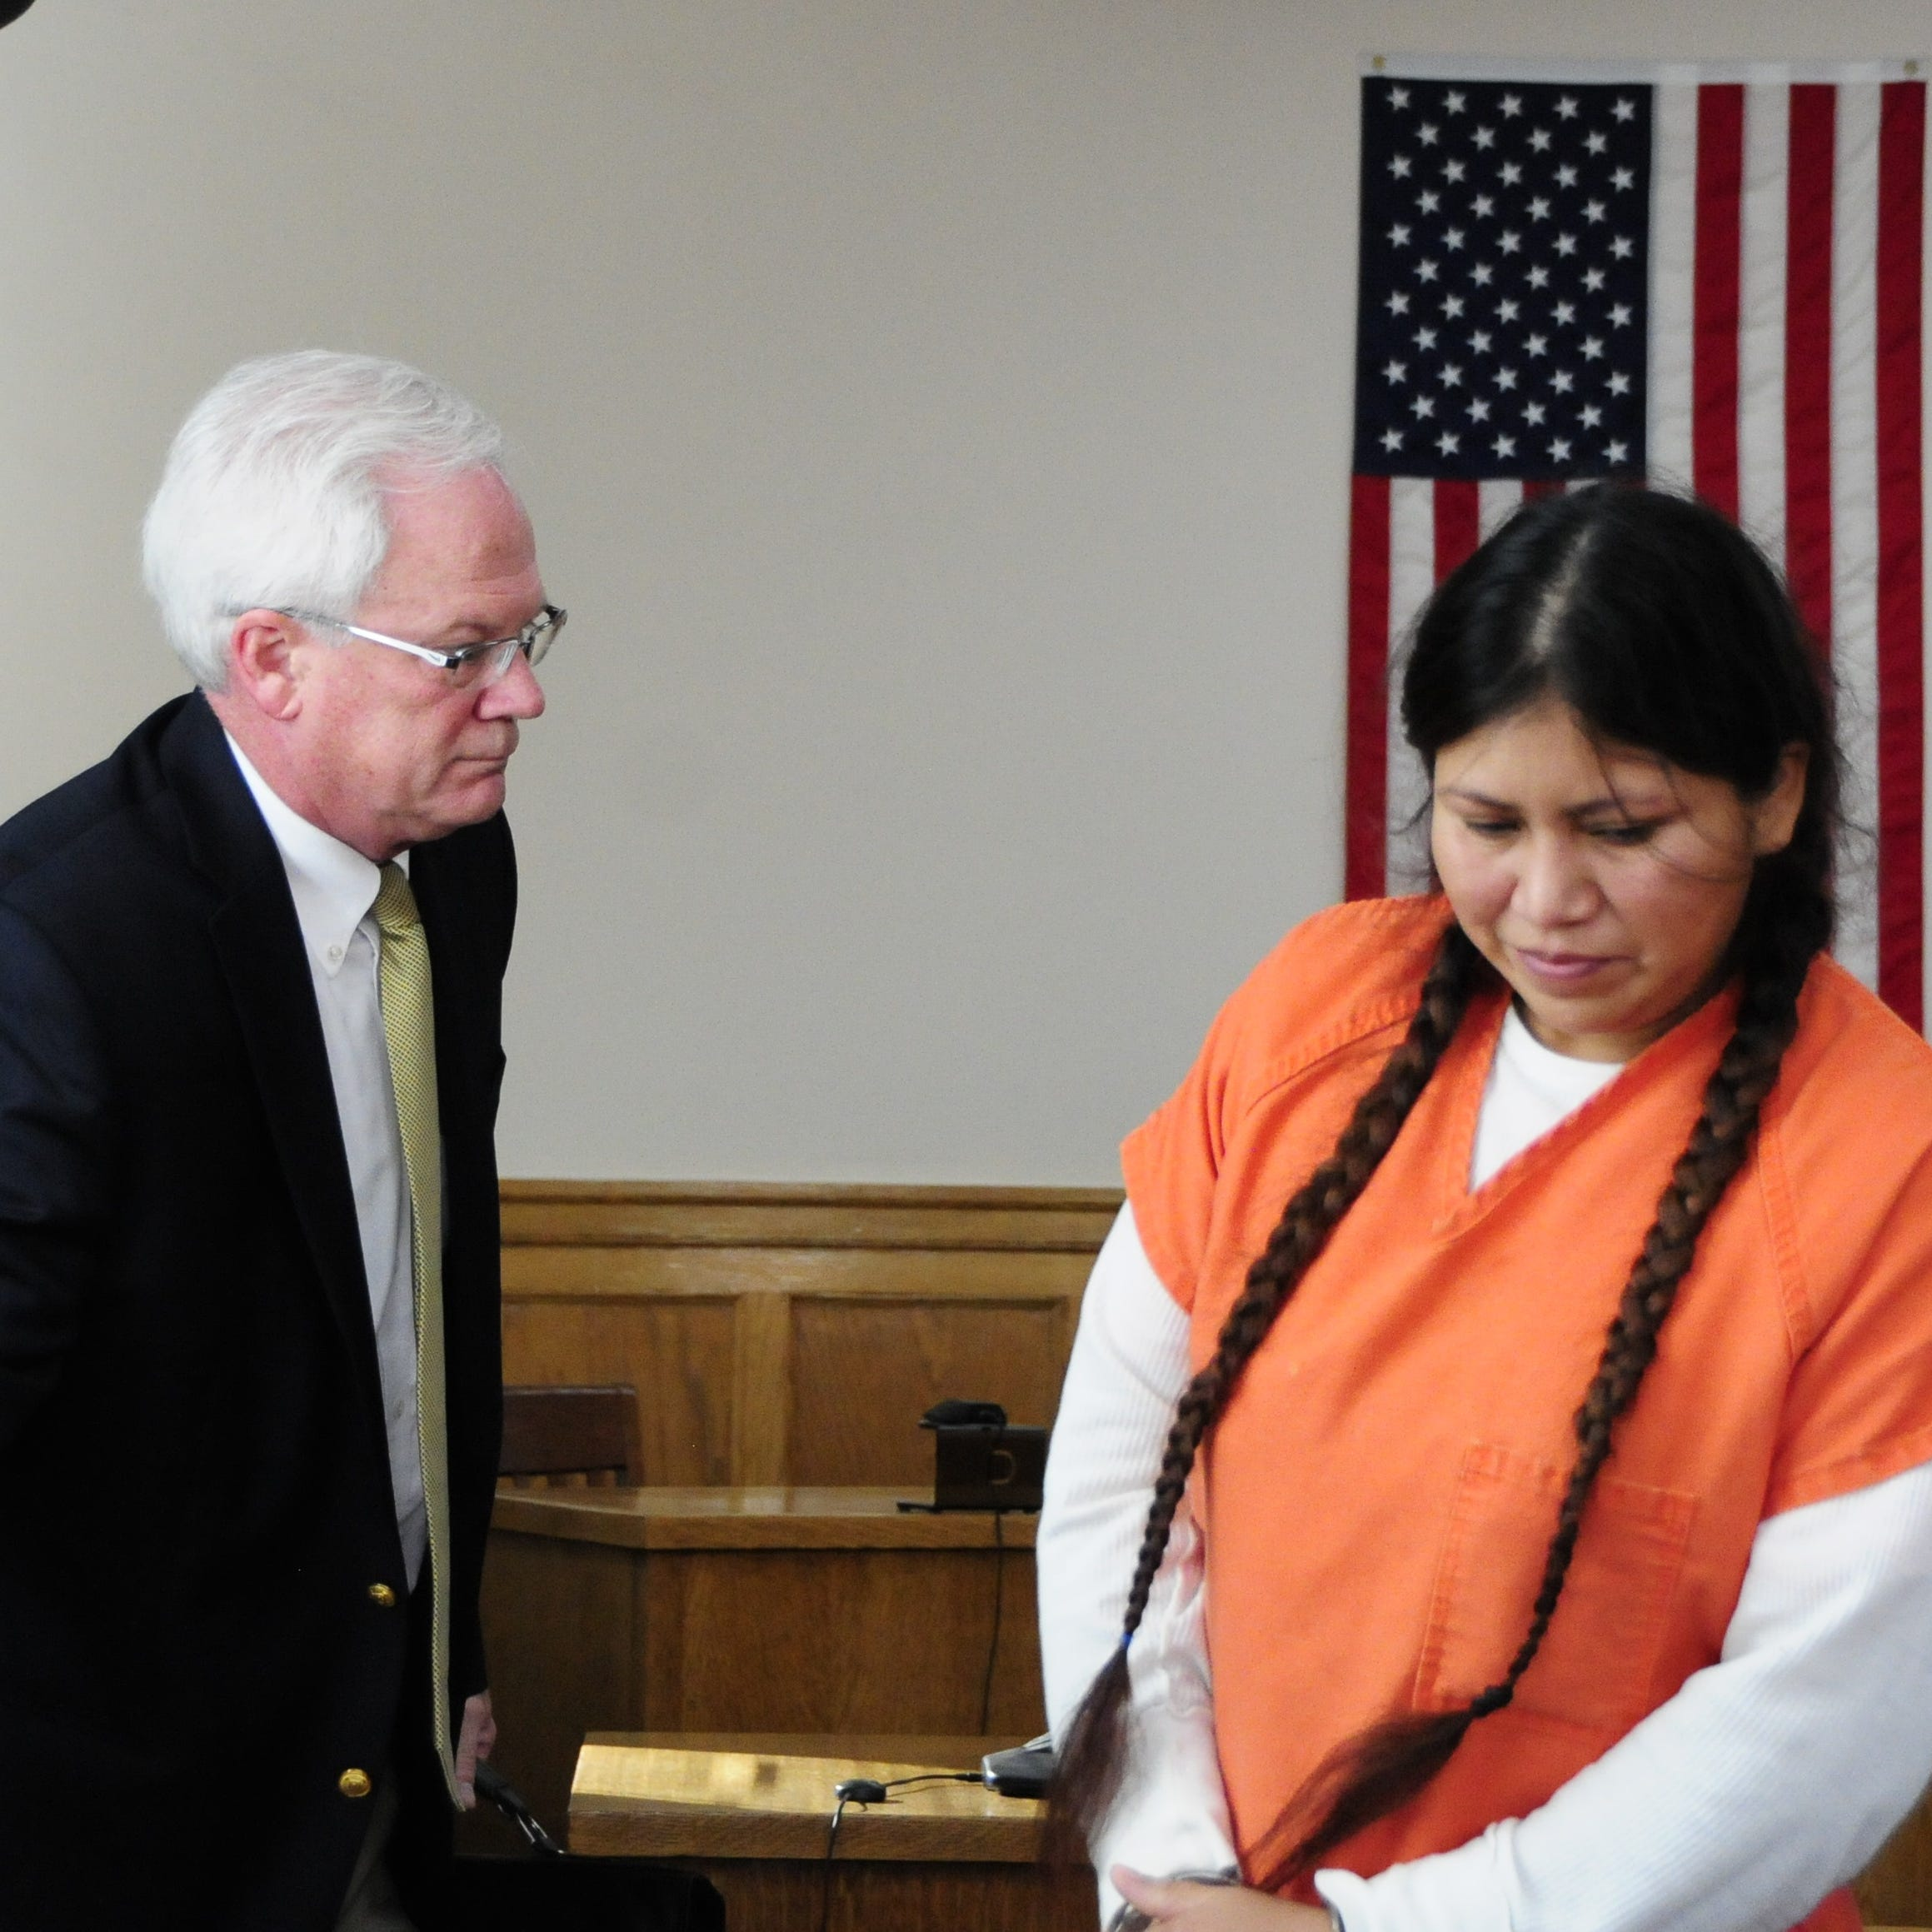 Francisca Vargas-Castillo passes her lawyer, Walter Salens, as she returns to her seat during a hearing in Sanilac District Court.